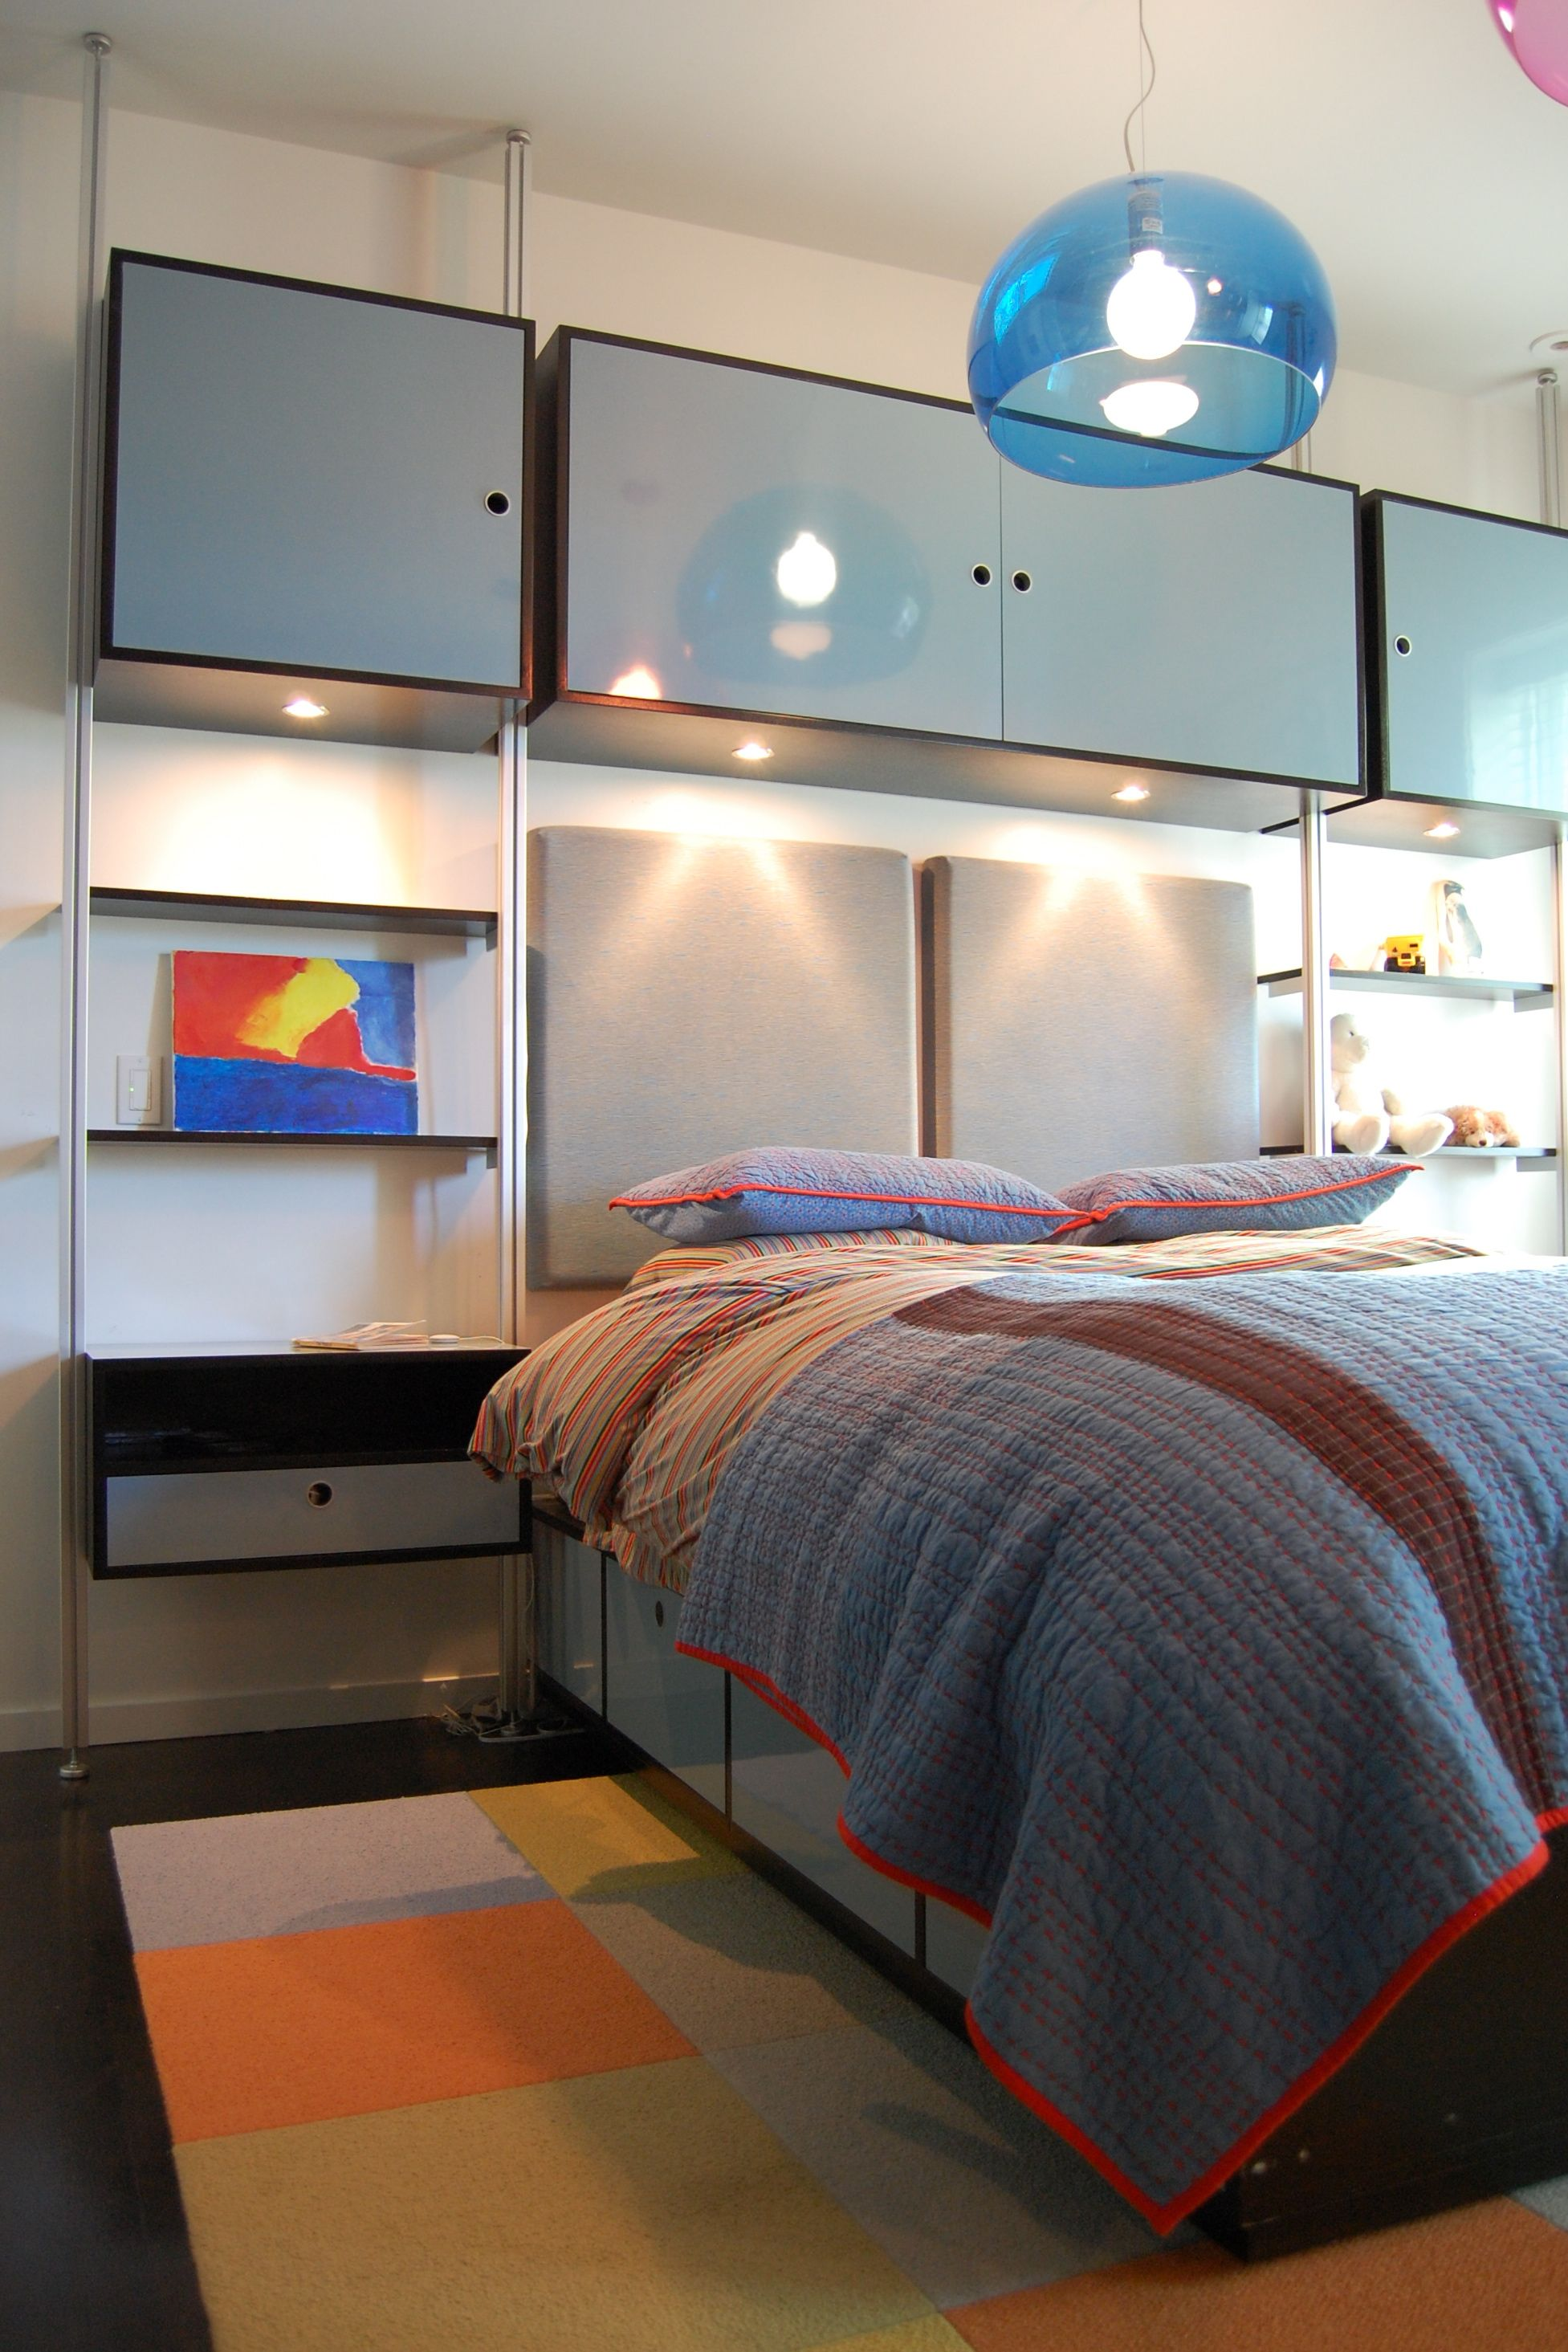 11 year old boys custom bedroom design including modular ...